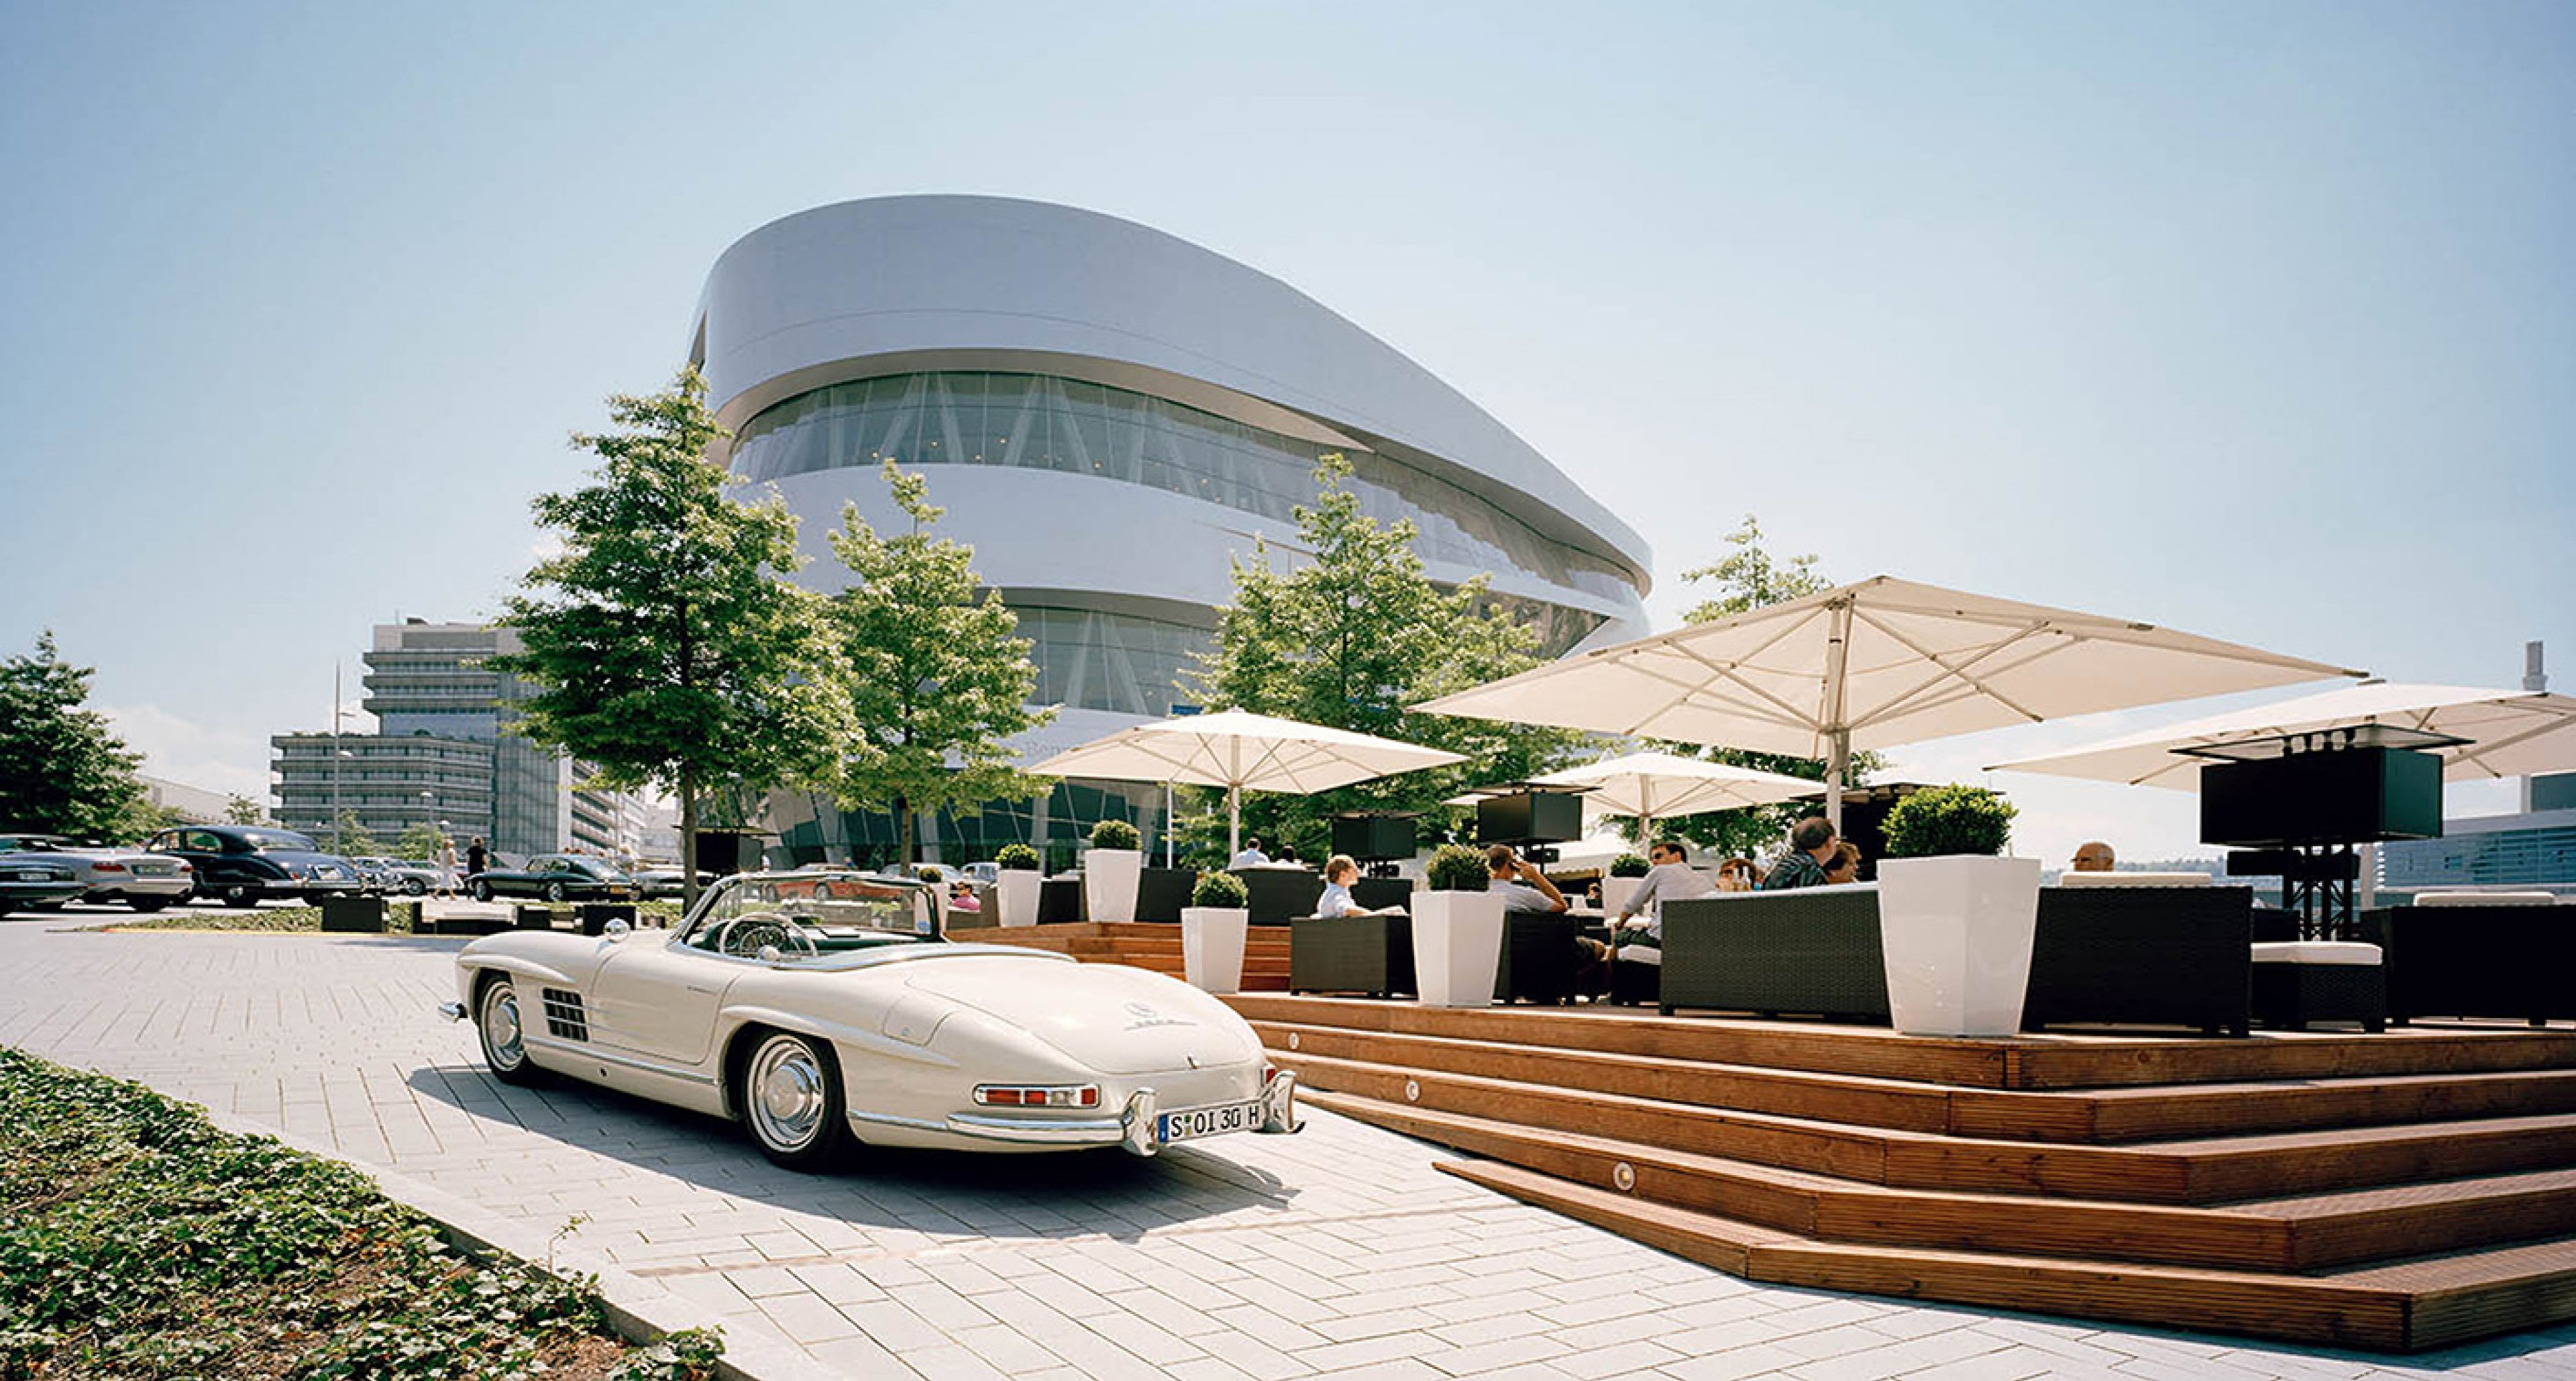 Bonhams' single-marque auction will take place at the Mercedes-Benz Museum in Stuttgart